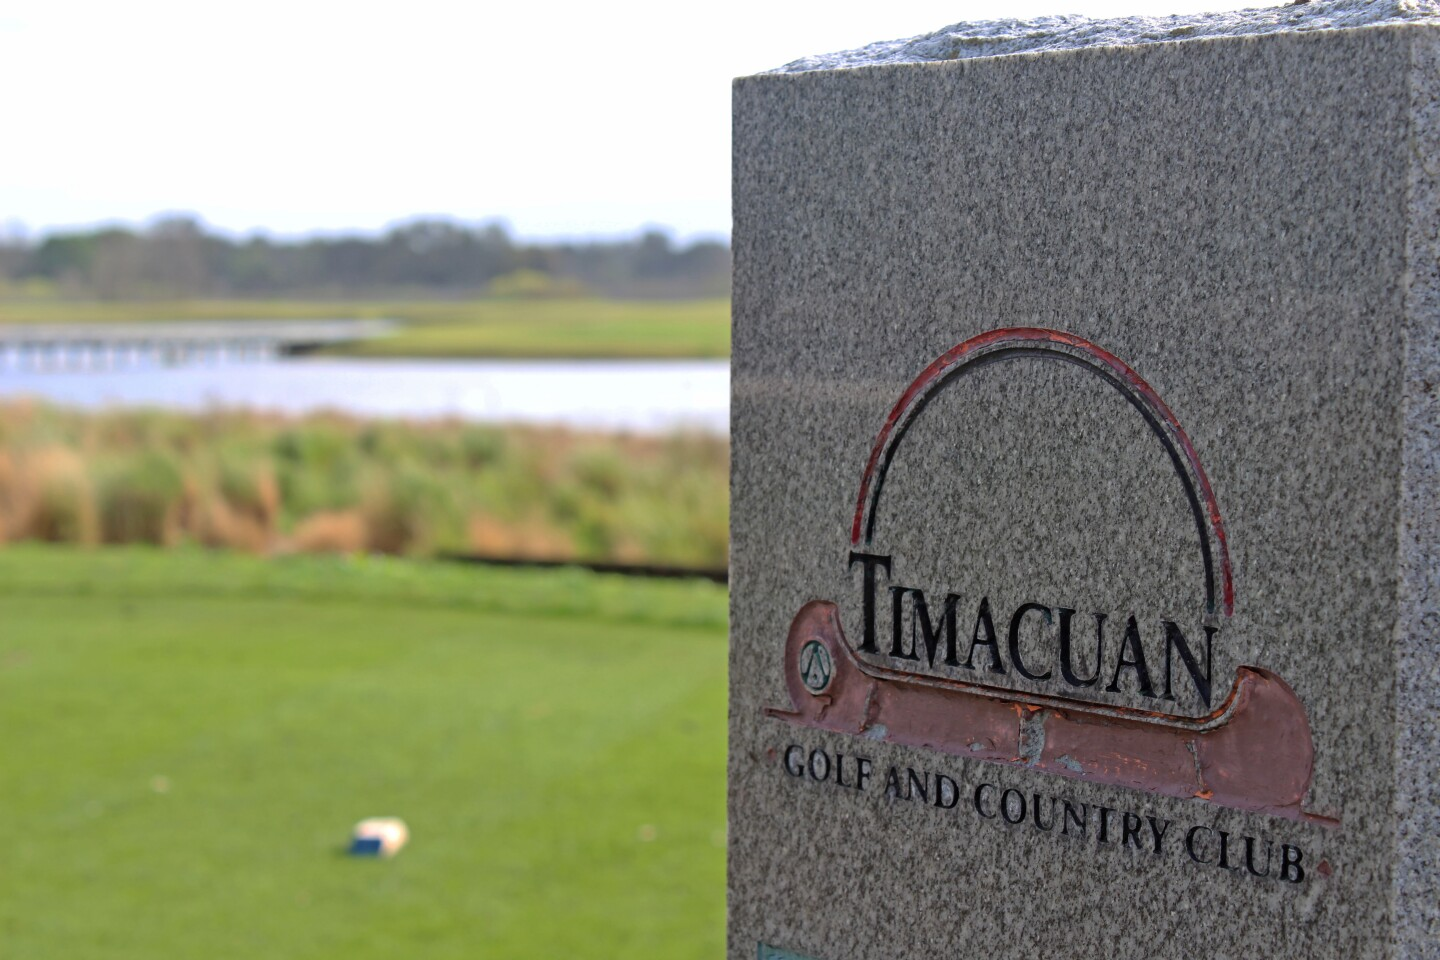 Timacuan Golf and Country Club Sign - 2020 - Sean Foley Performance Junior Championship.JPG